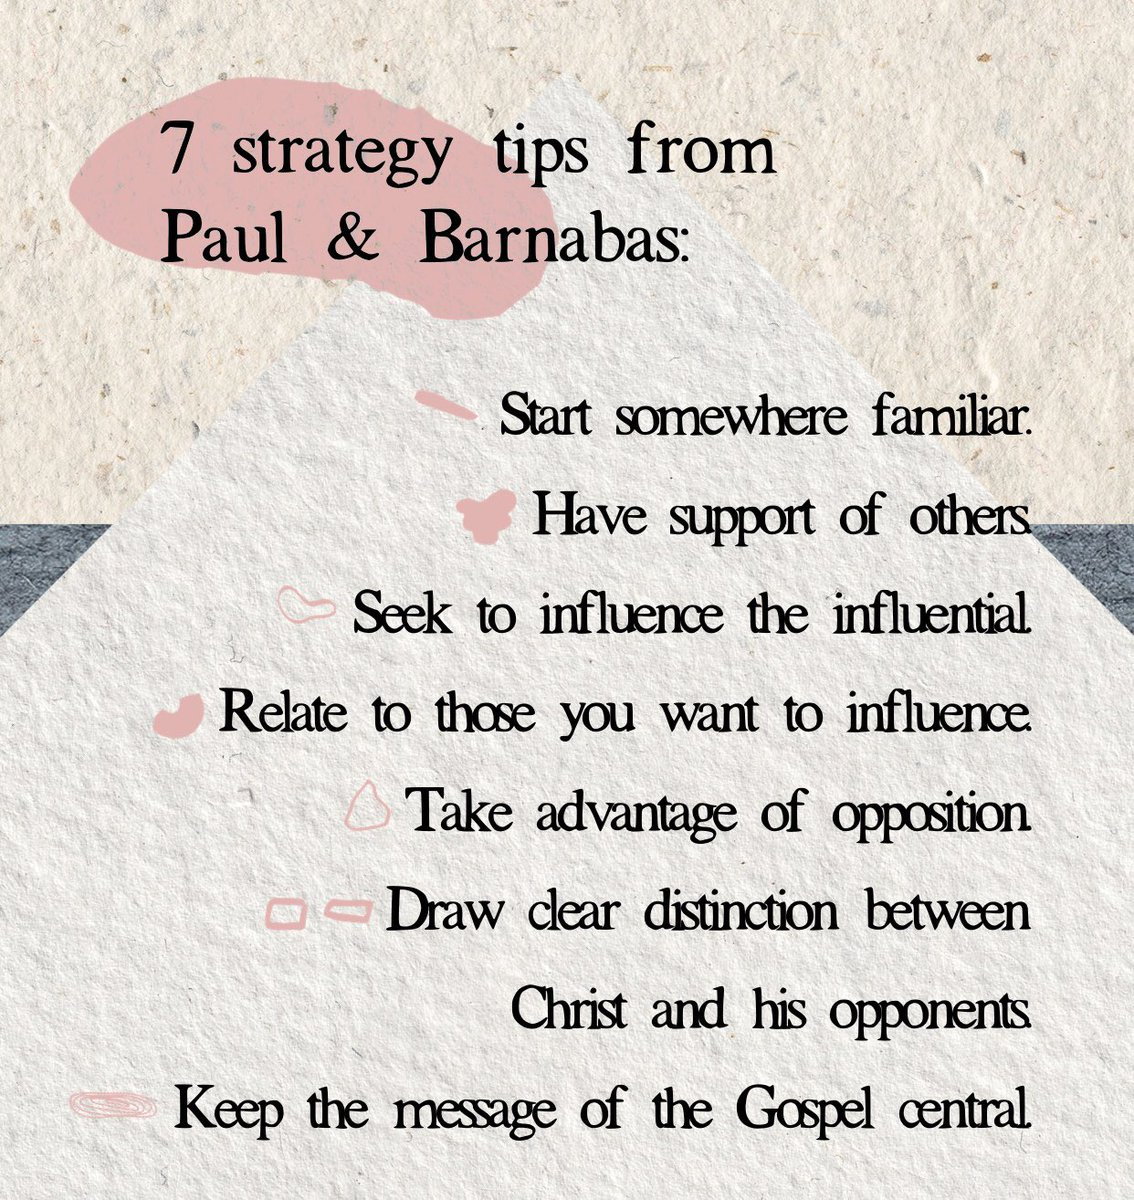 From Acts 13:4-12, Seven strategy tips from Paul and Barnabas